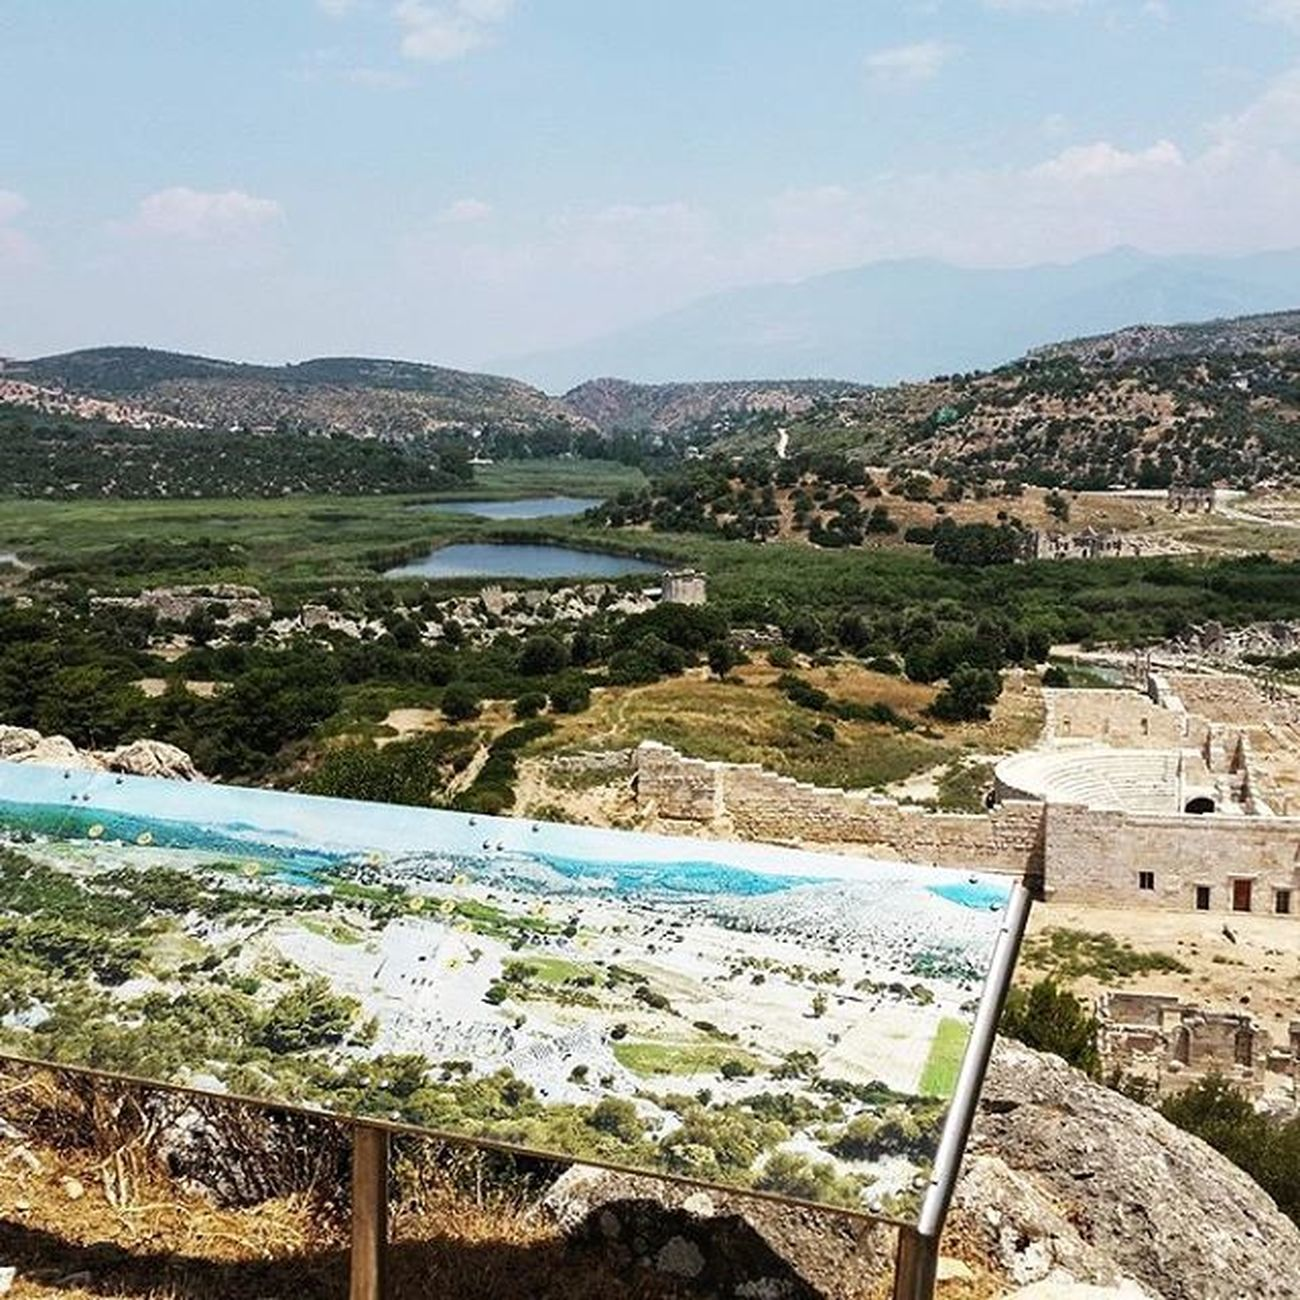 Patara Likyayolu Likyaturu Likya Lisiya Antal Kas Kalkan Lycia Lycianway Lyciantrail 고도 древнийгород Arsinoe Pttara AncientCity Antikkent Cittàantica 古都